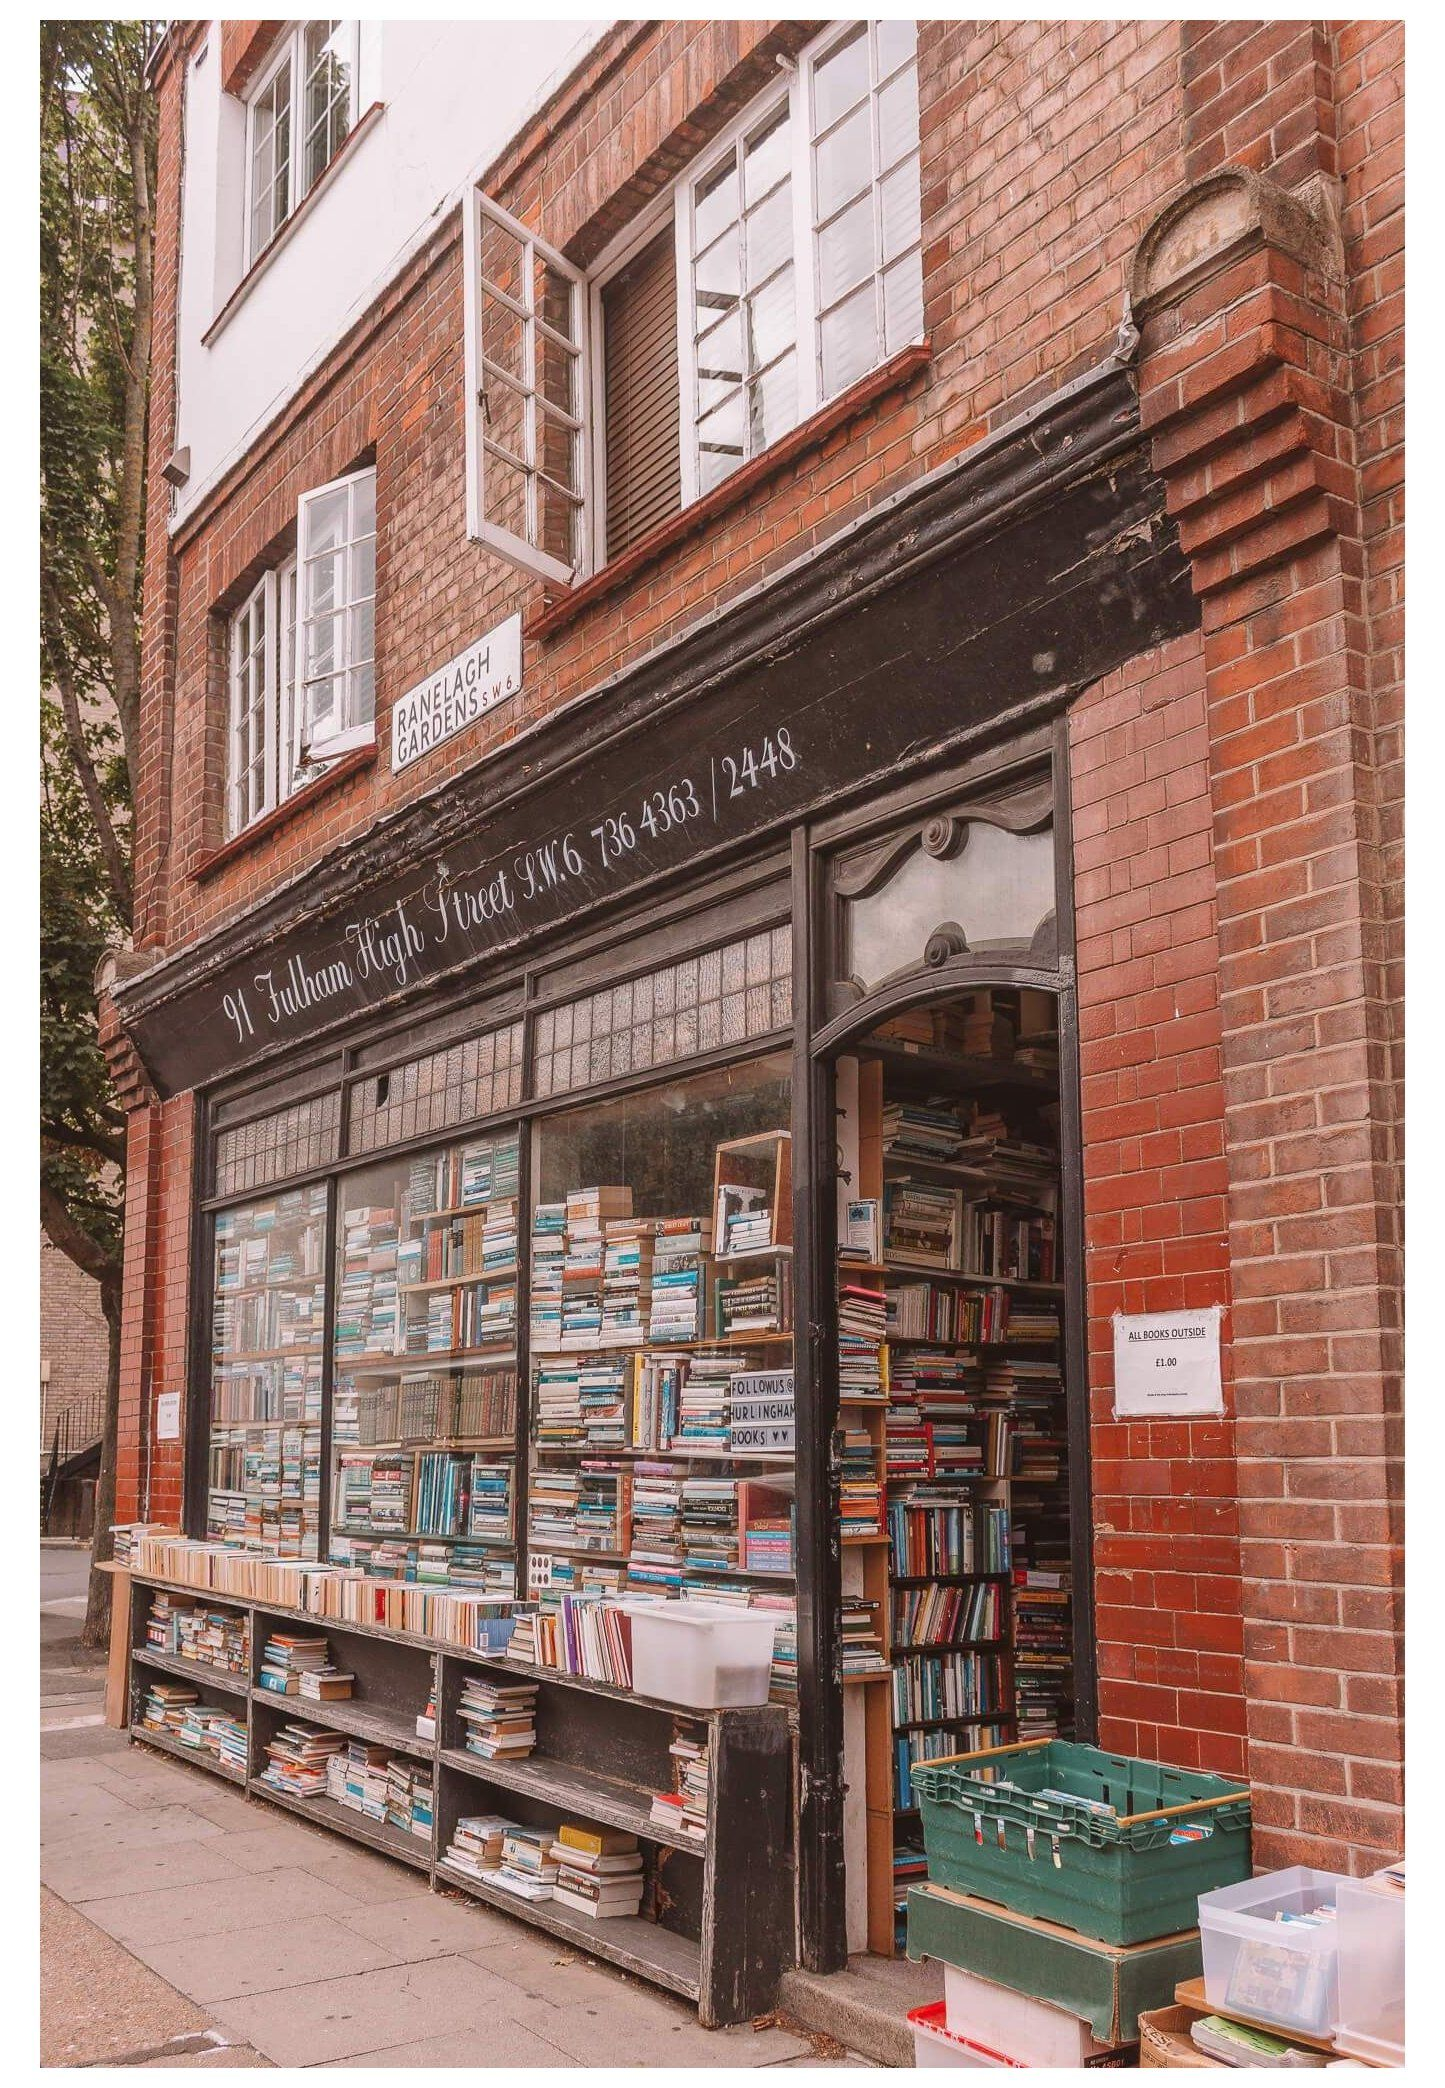 15 Most Beautiful Independent Bookshops In London Old Book Store Aesthetic There Are Many Opportunities For Book Shopping I Bookshop Bookstore Architecture